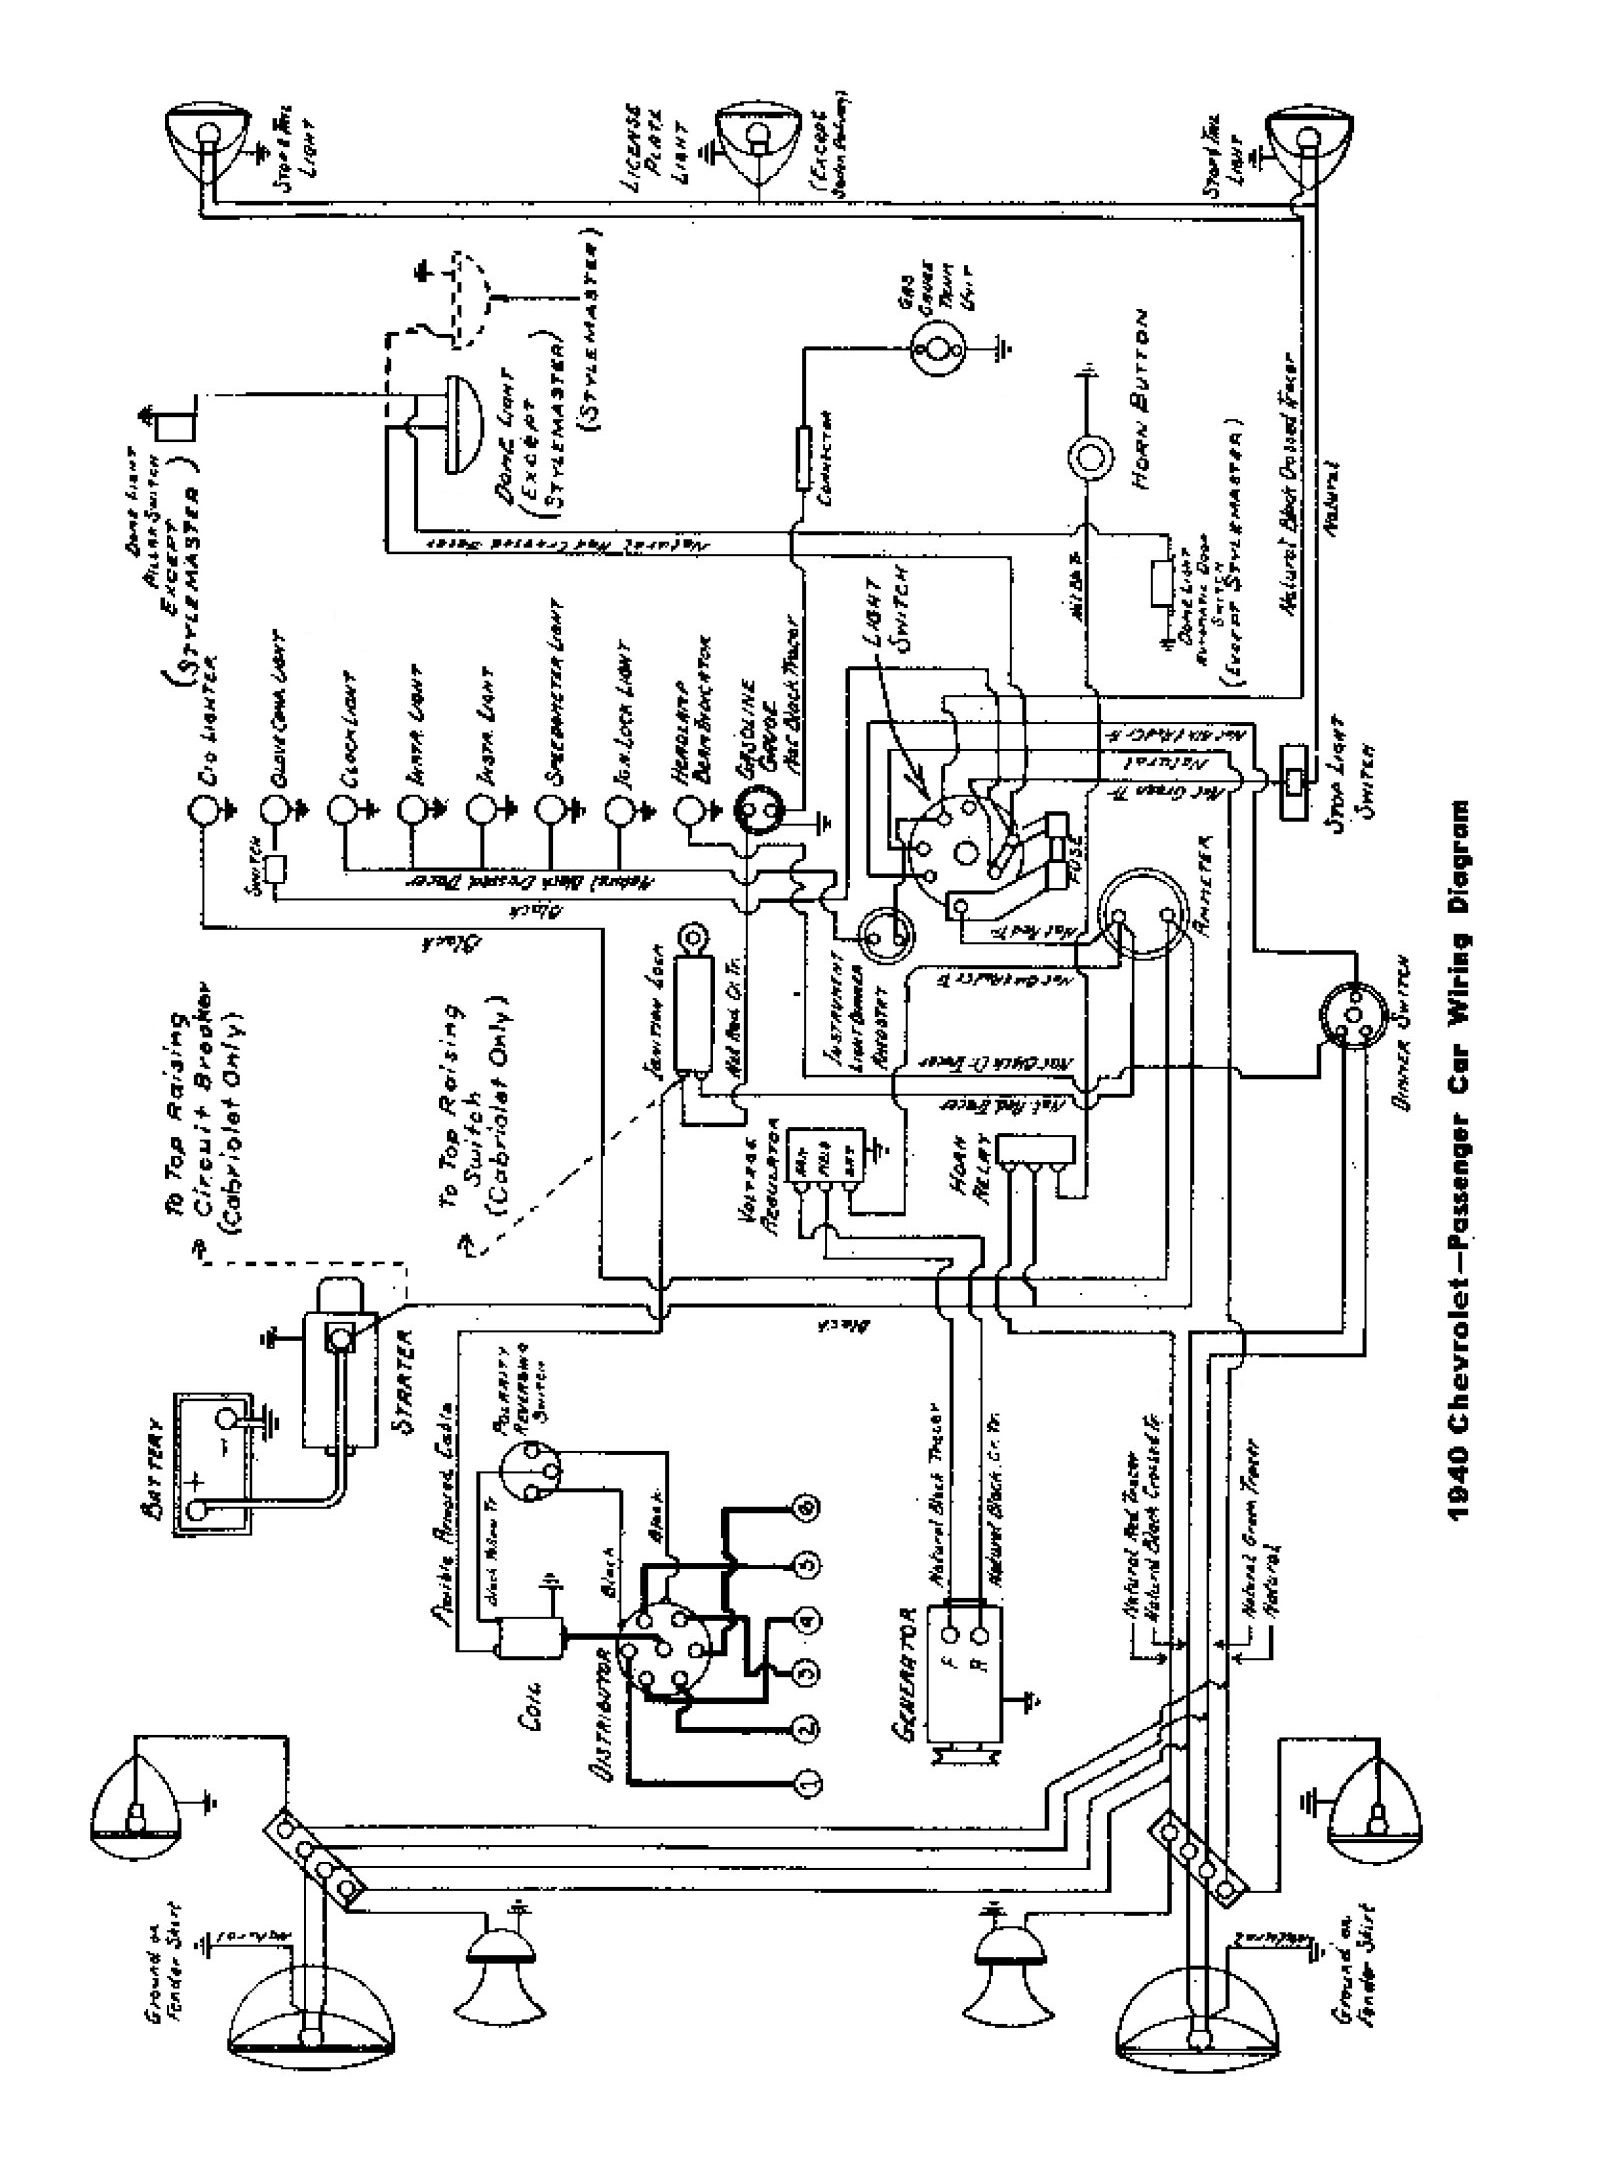 hight resolution of chevy wiring diagrams 51 ford fuel gauge wiring diagram 1940 passenger car wiring